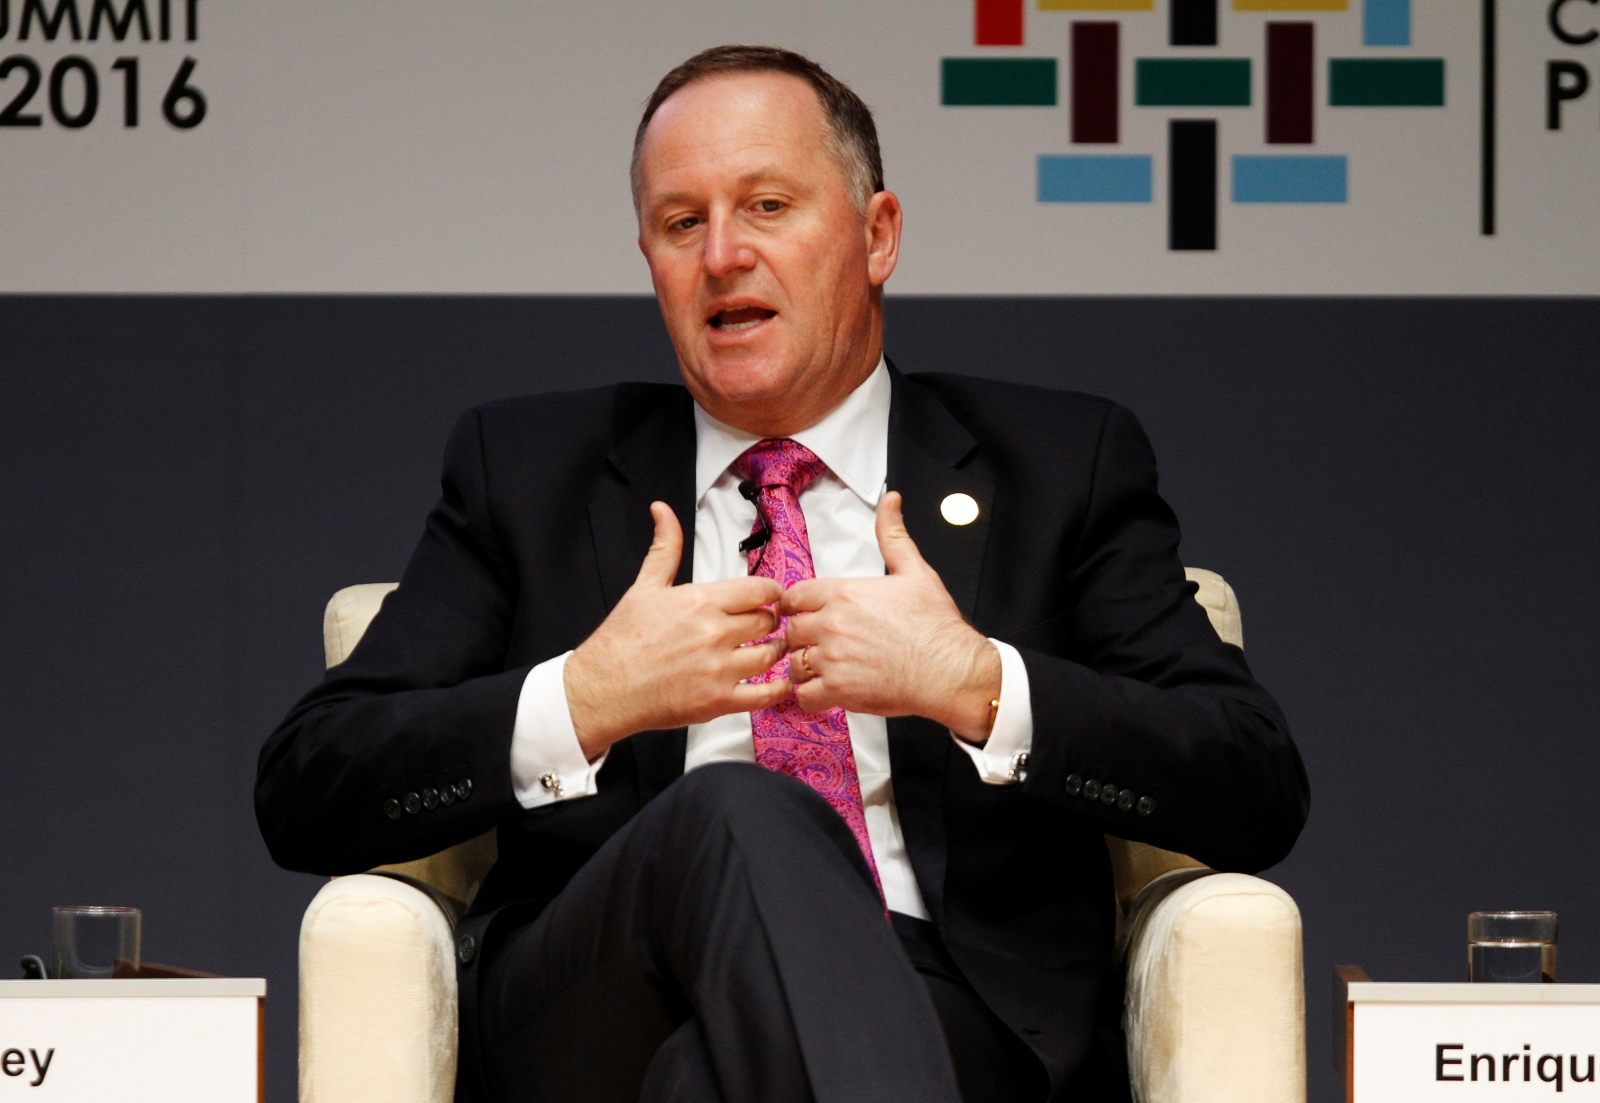 New Zealand Prime Minister John Key announces resignation